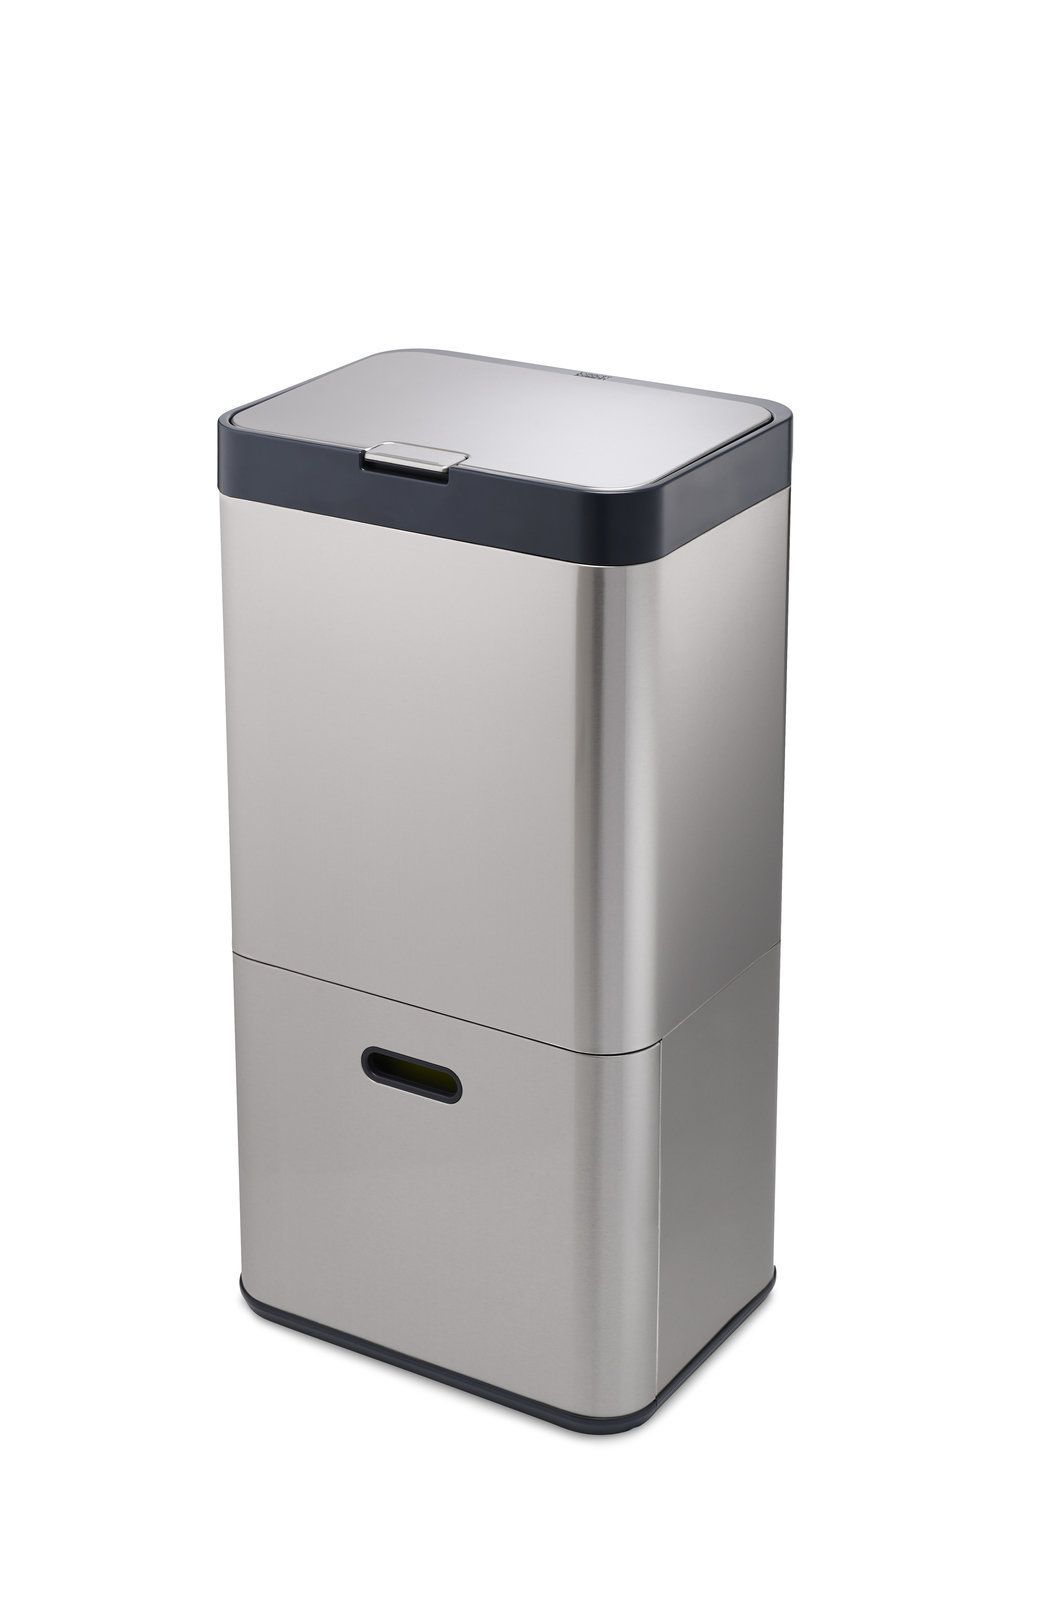 Intelligent Waste 15.9-Gal. Opening Mechanism Multi-Compartment Trash and Recycling Bin